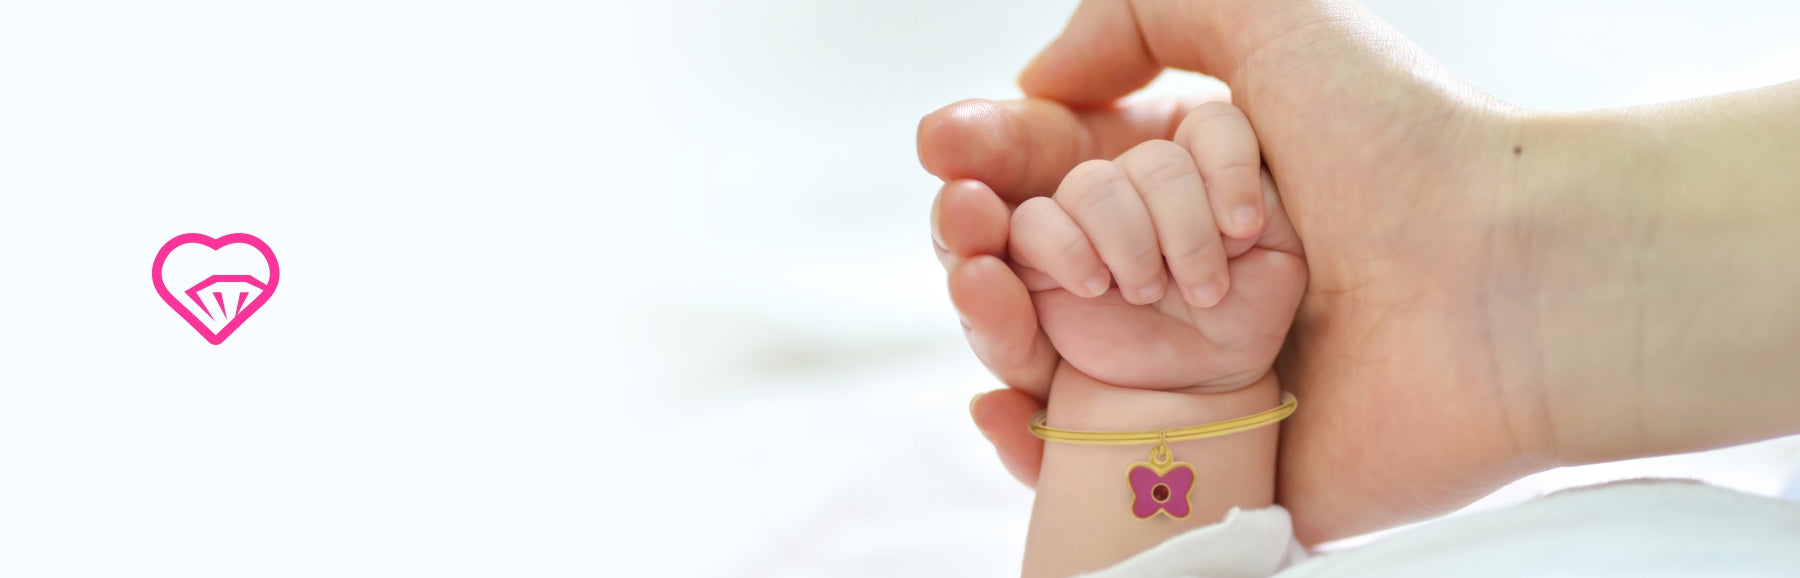 Bracelet Size Guide for Babies and Kids